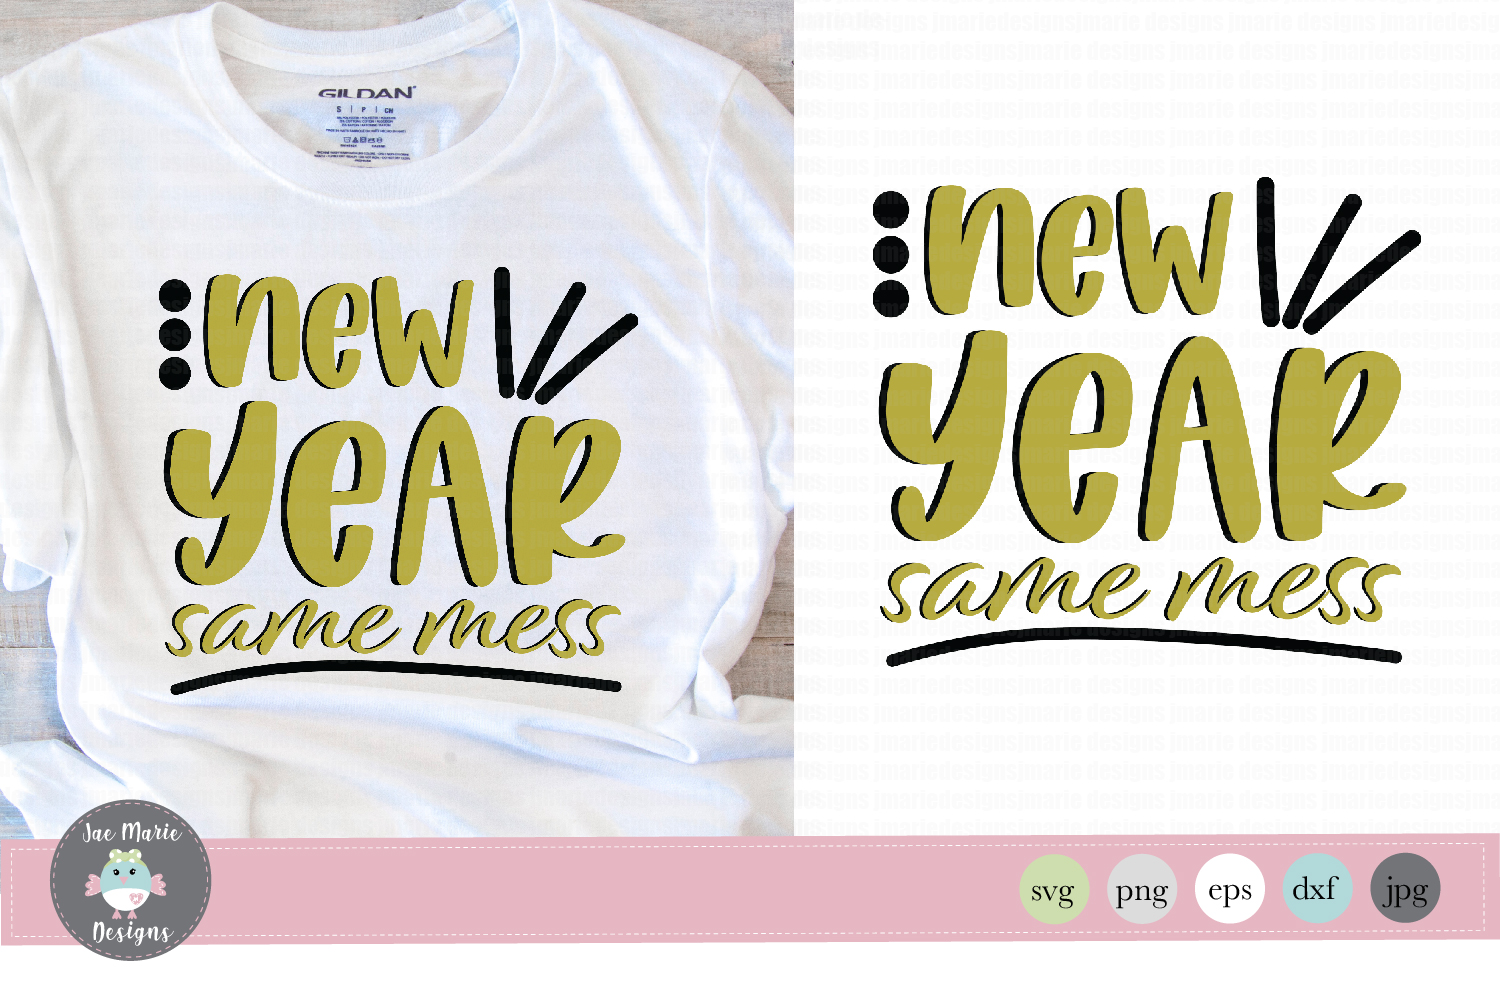 Download Free New Year Same Mess Graphic By Thejaemarie Creative Fabrica for Cricut Explore, Silhouette and other cutting machines.